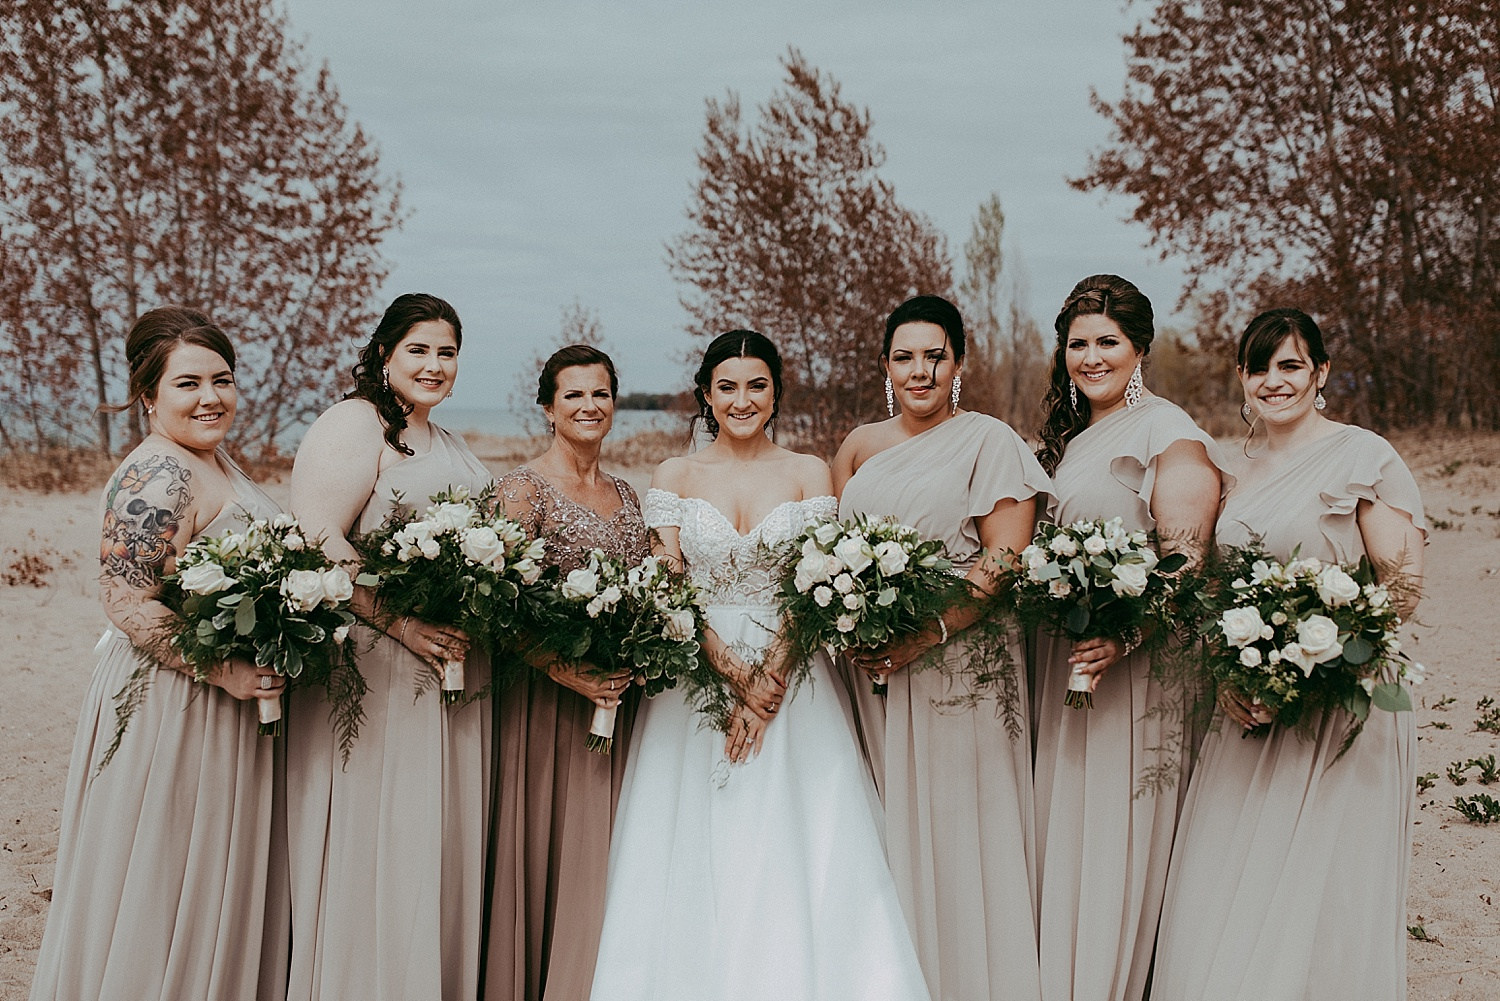 bridesmaids standing in line on beach, wedding photography